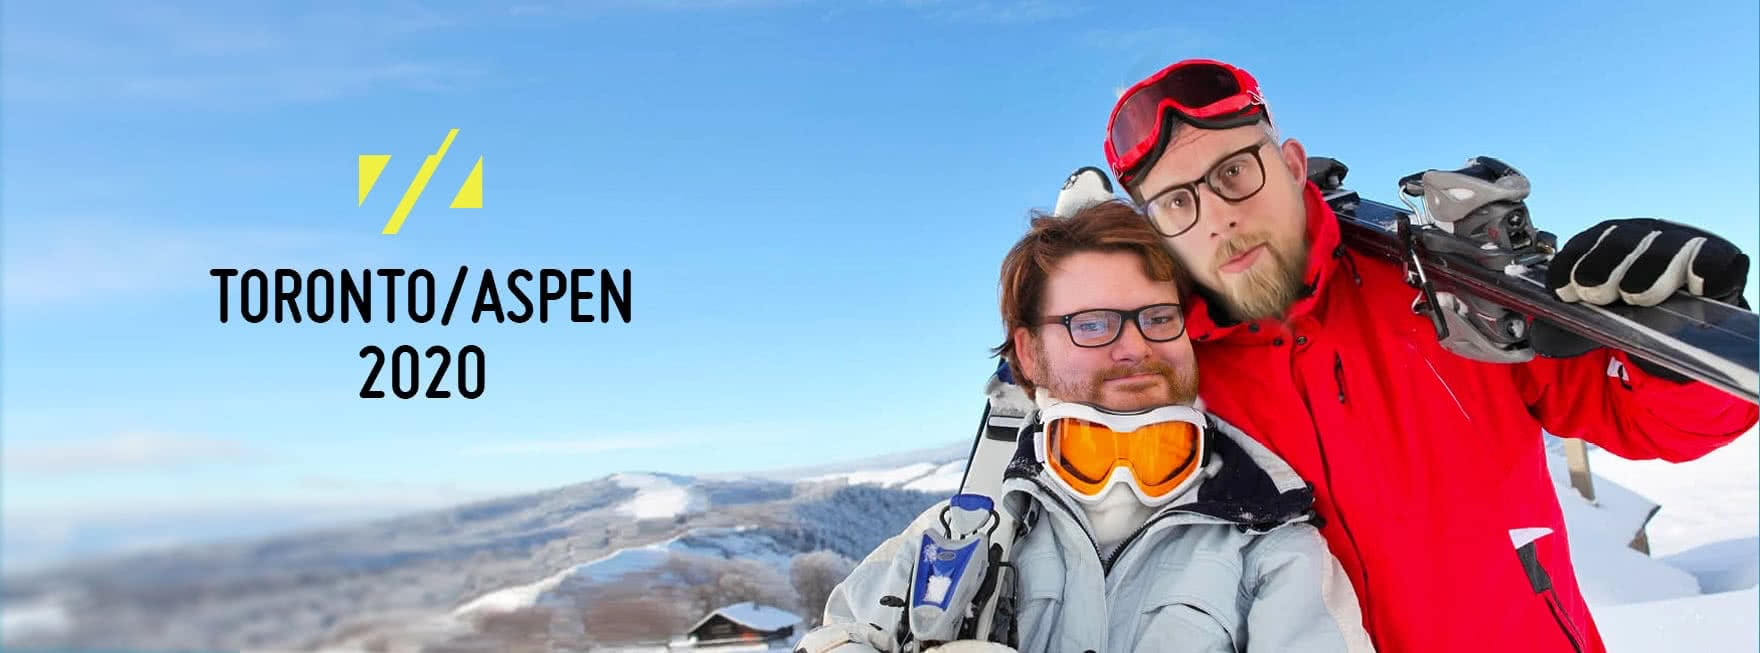 TrafficLab News - Winners go to Aspen!